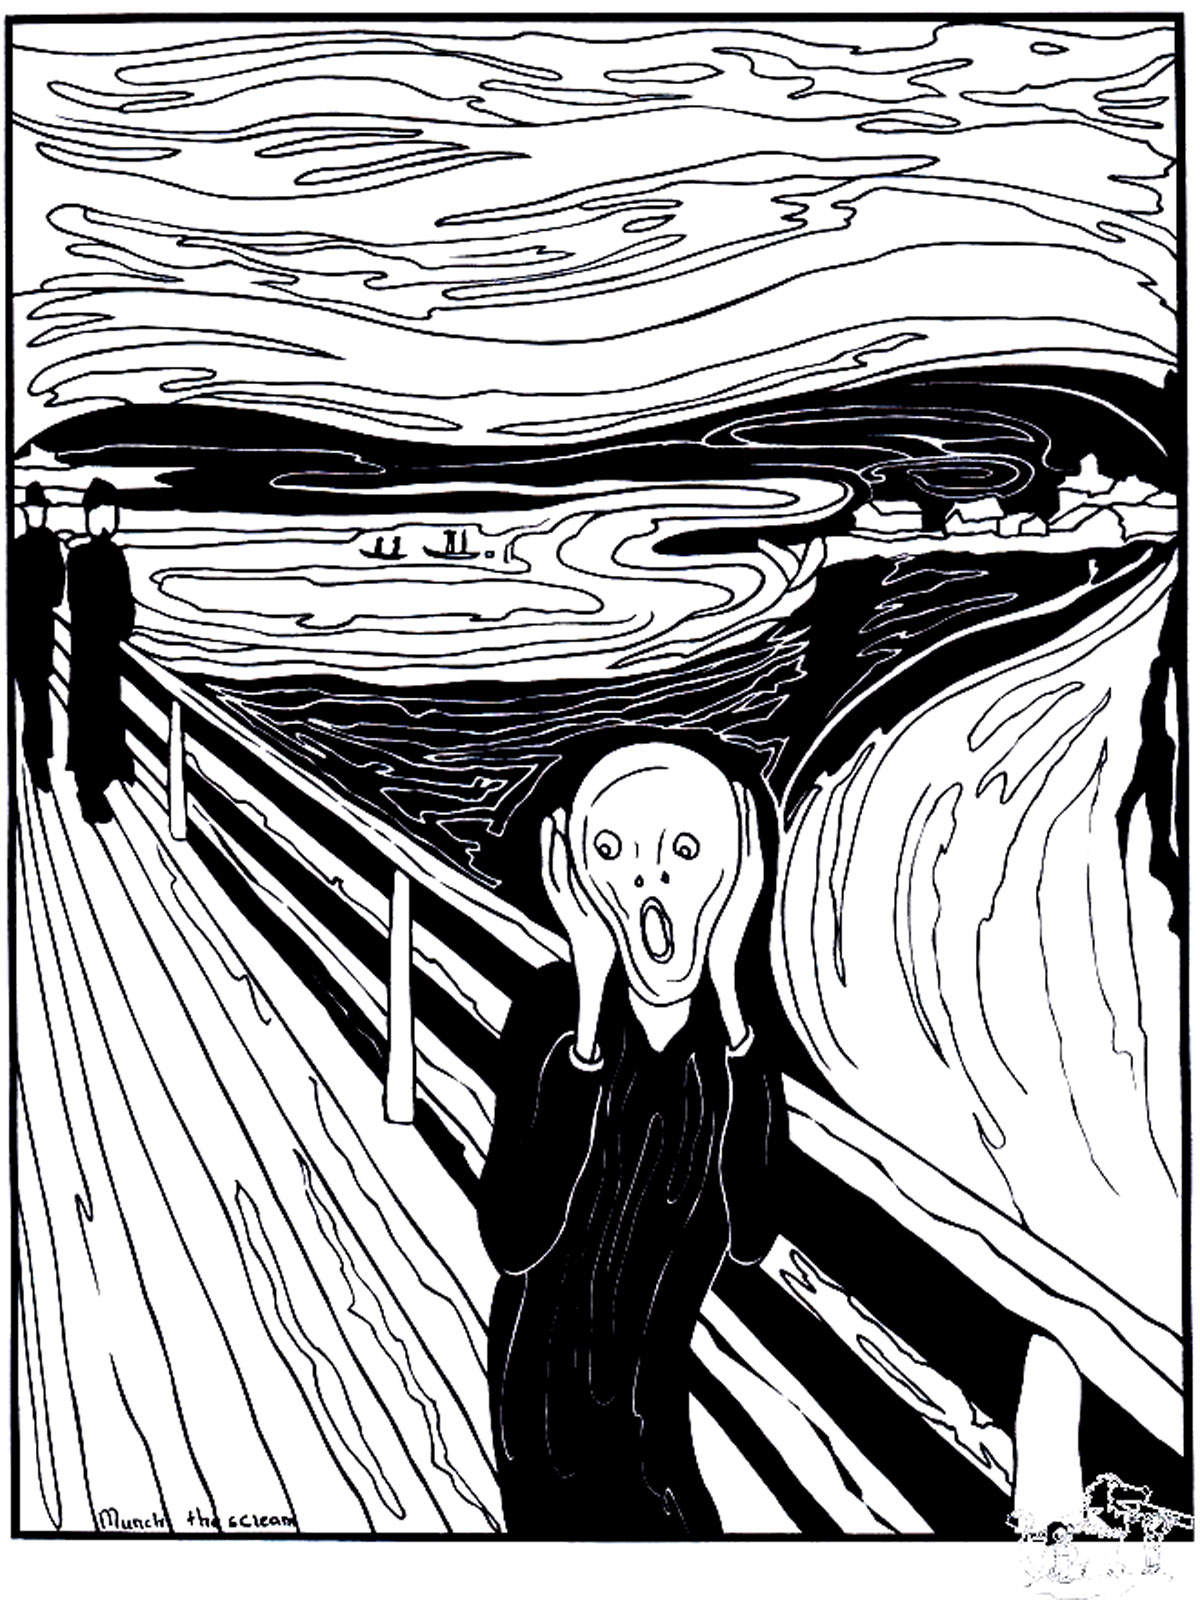 The Scream was painted by the expressionist artist Edvard Munch in 1893